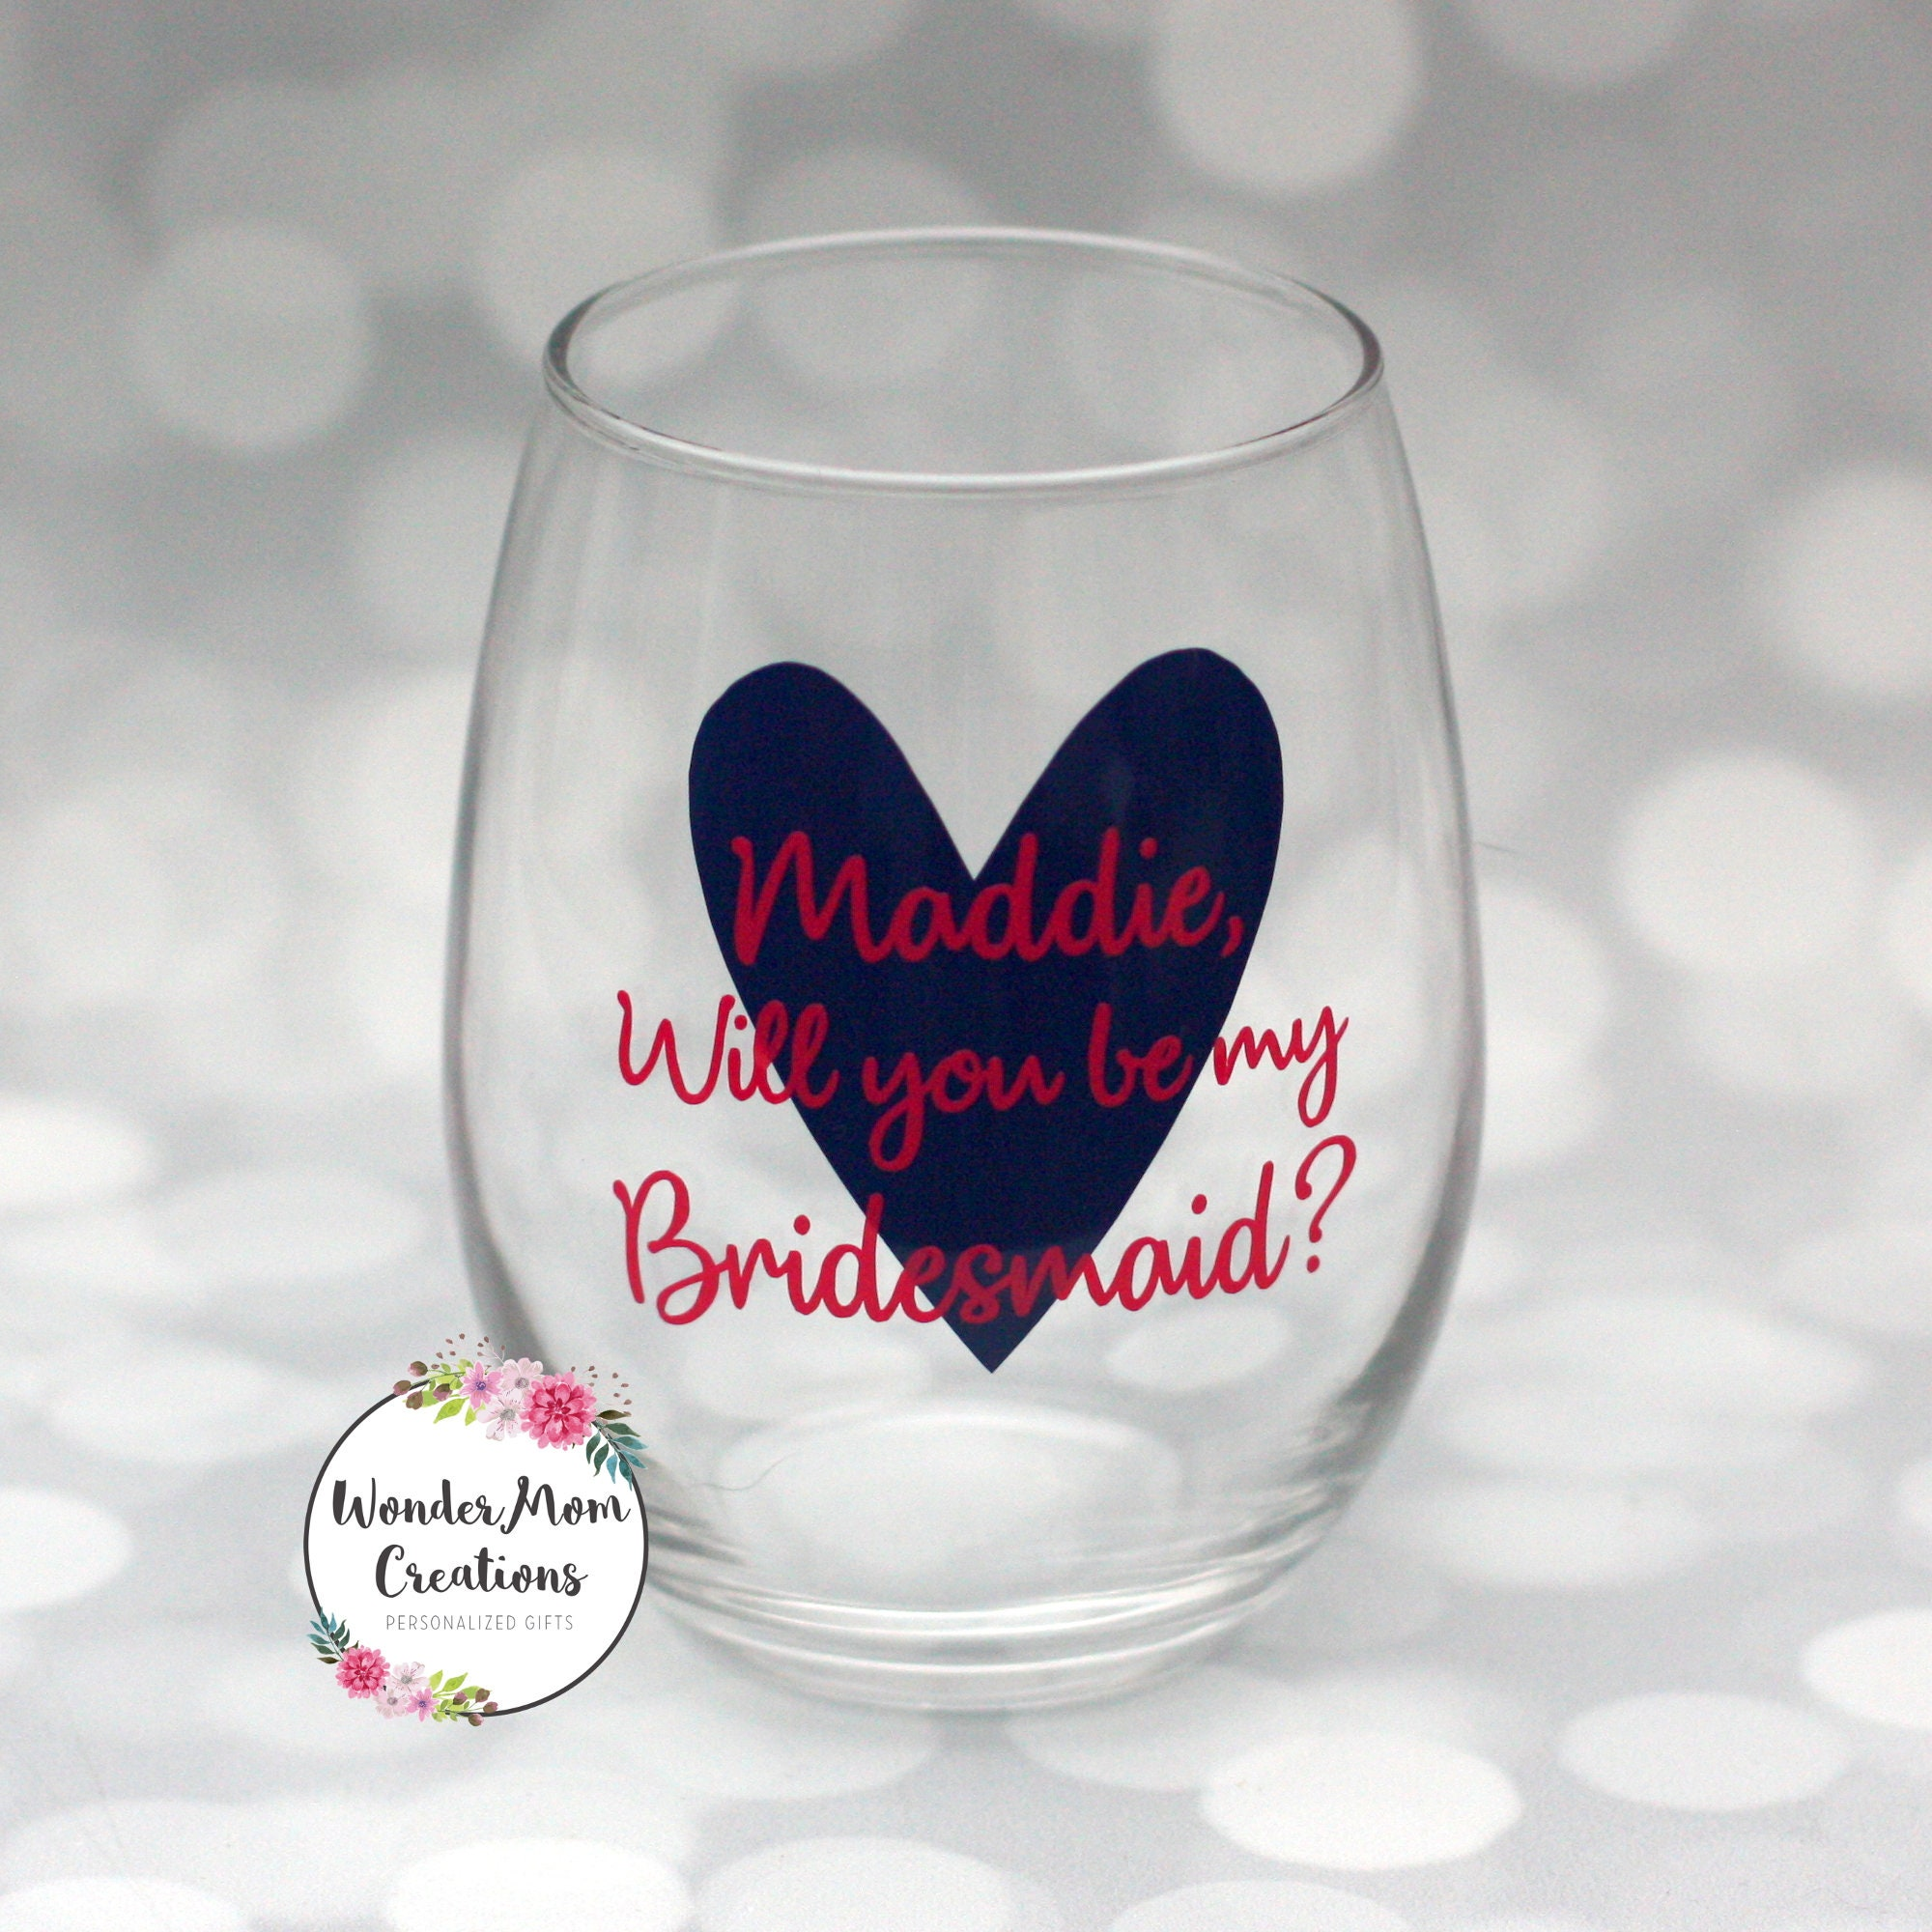 9a311c5f0f2 Will you be my Bridesmaid Wine Glass Bridesmaid Proposal | Etsy